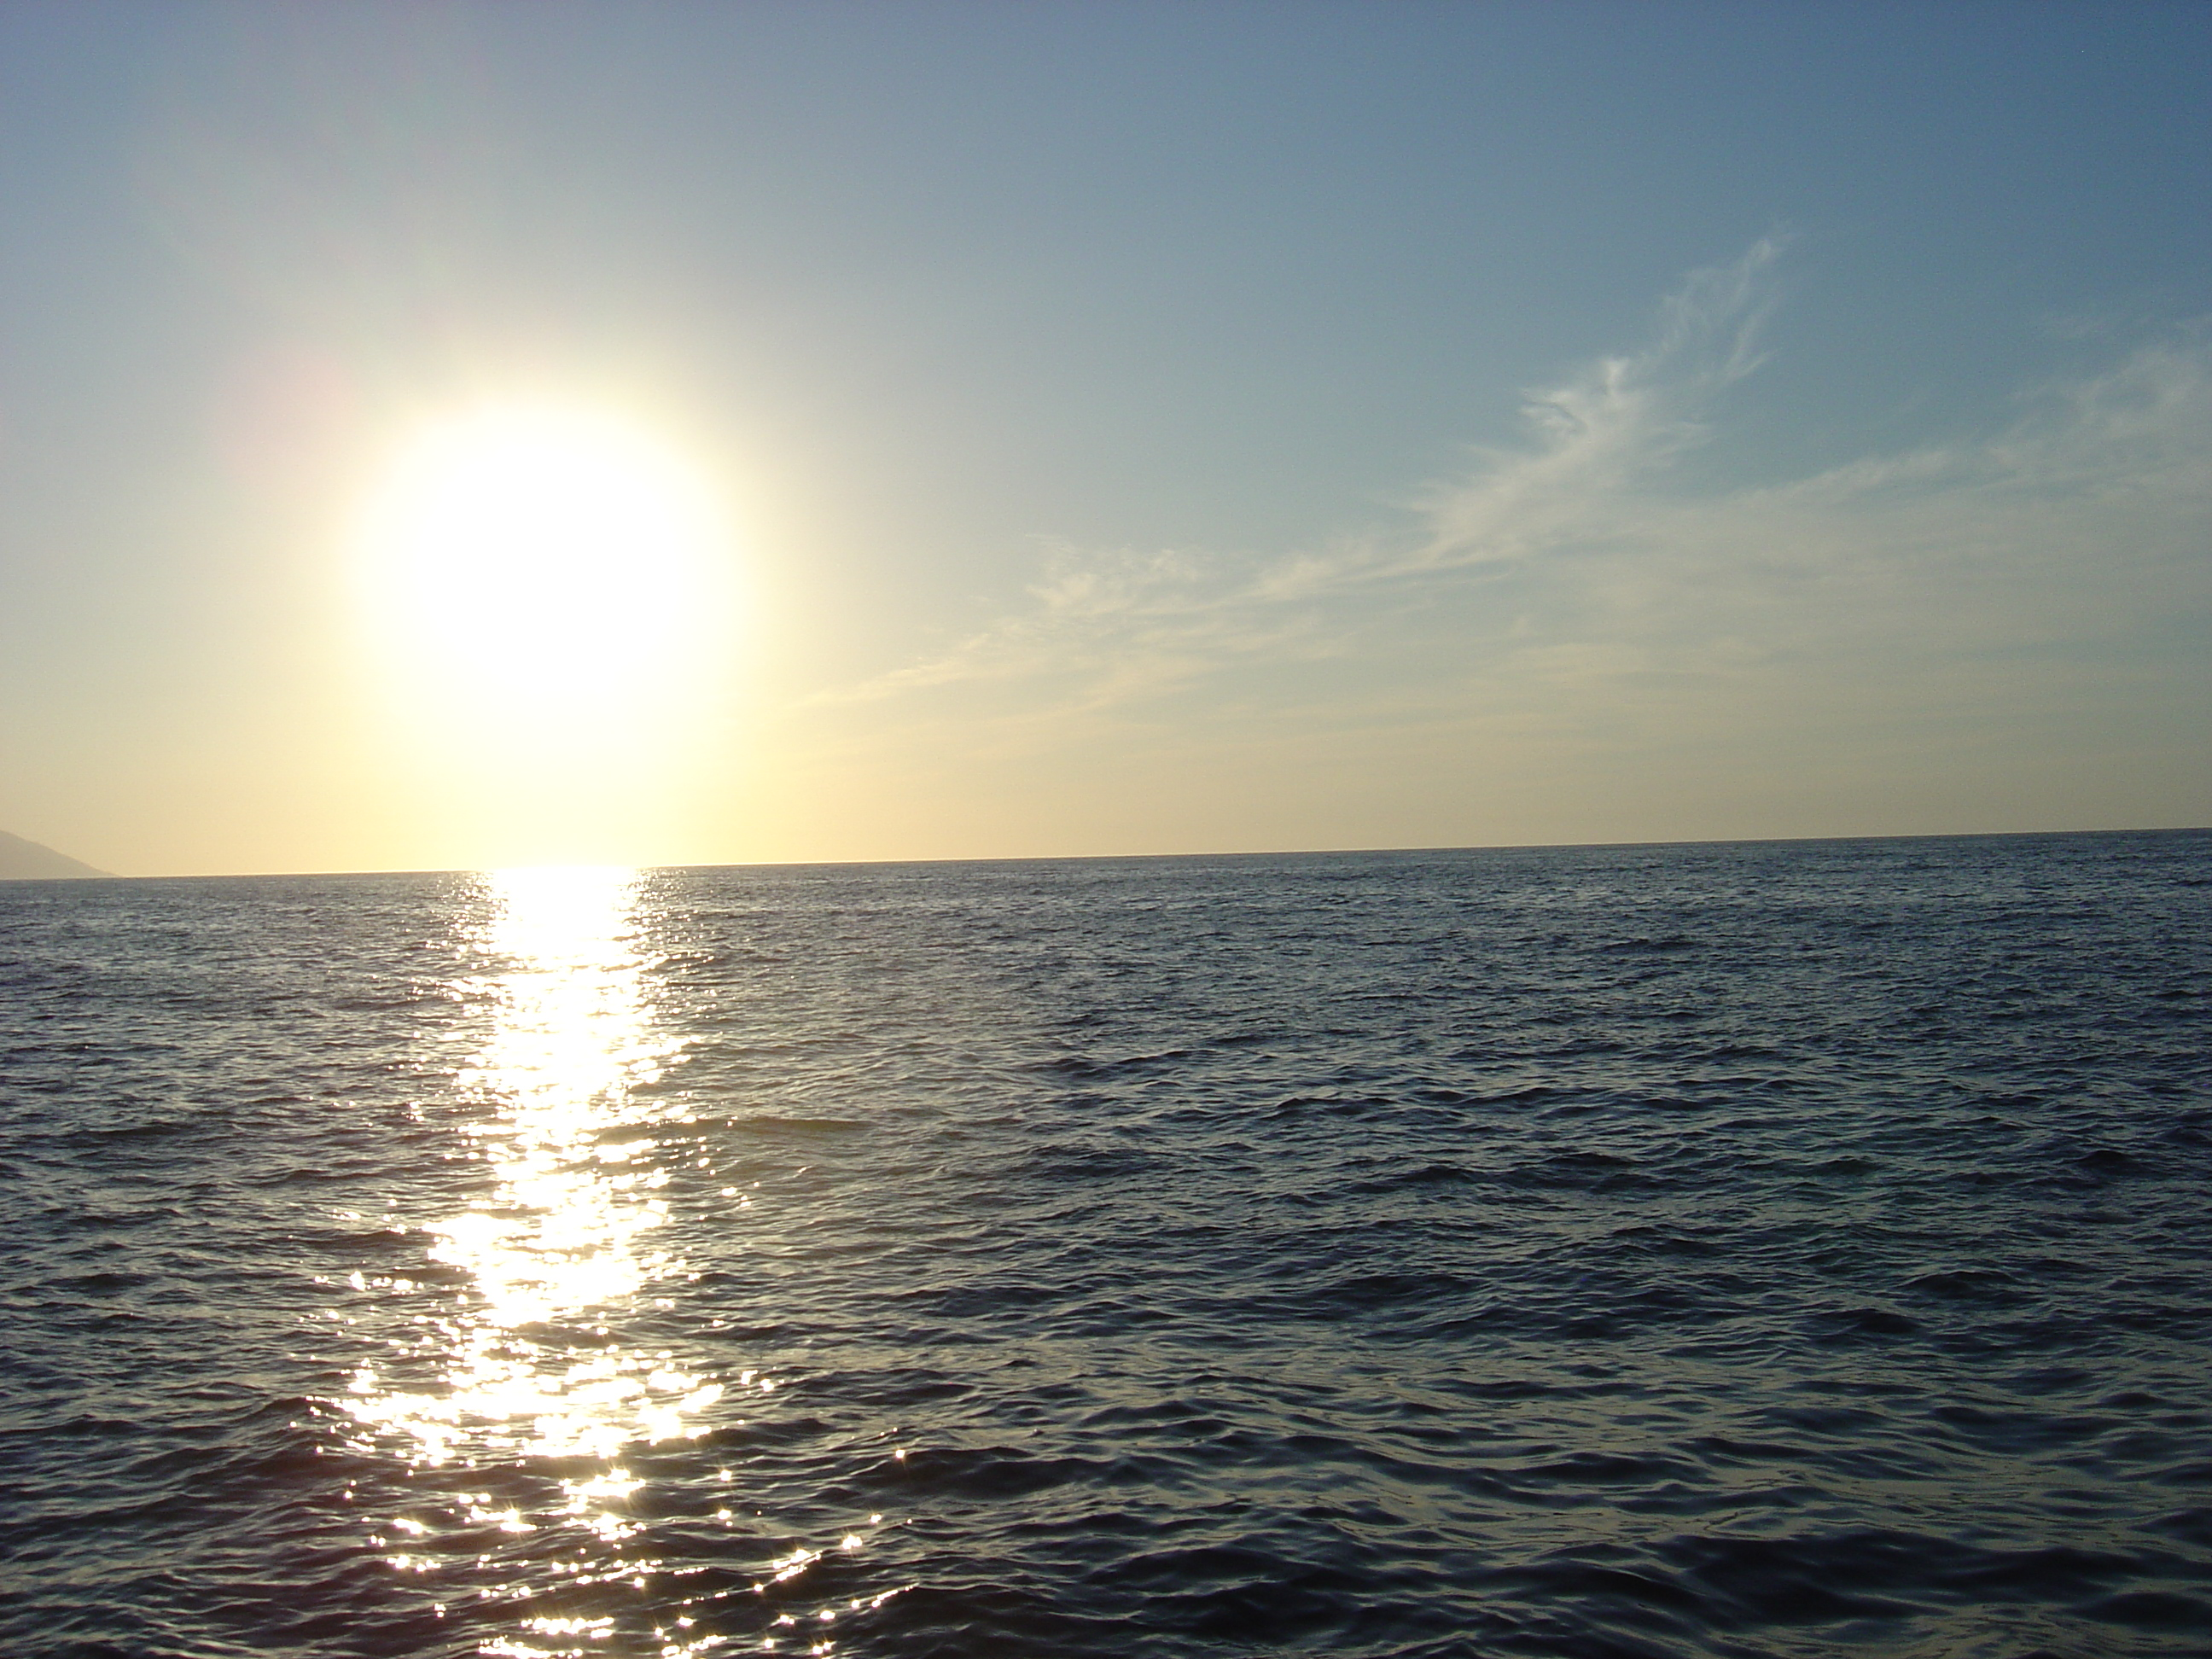 Sun over the water